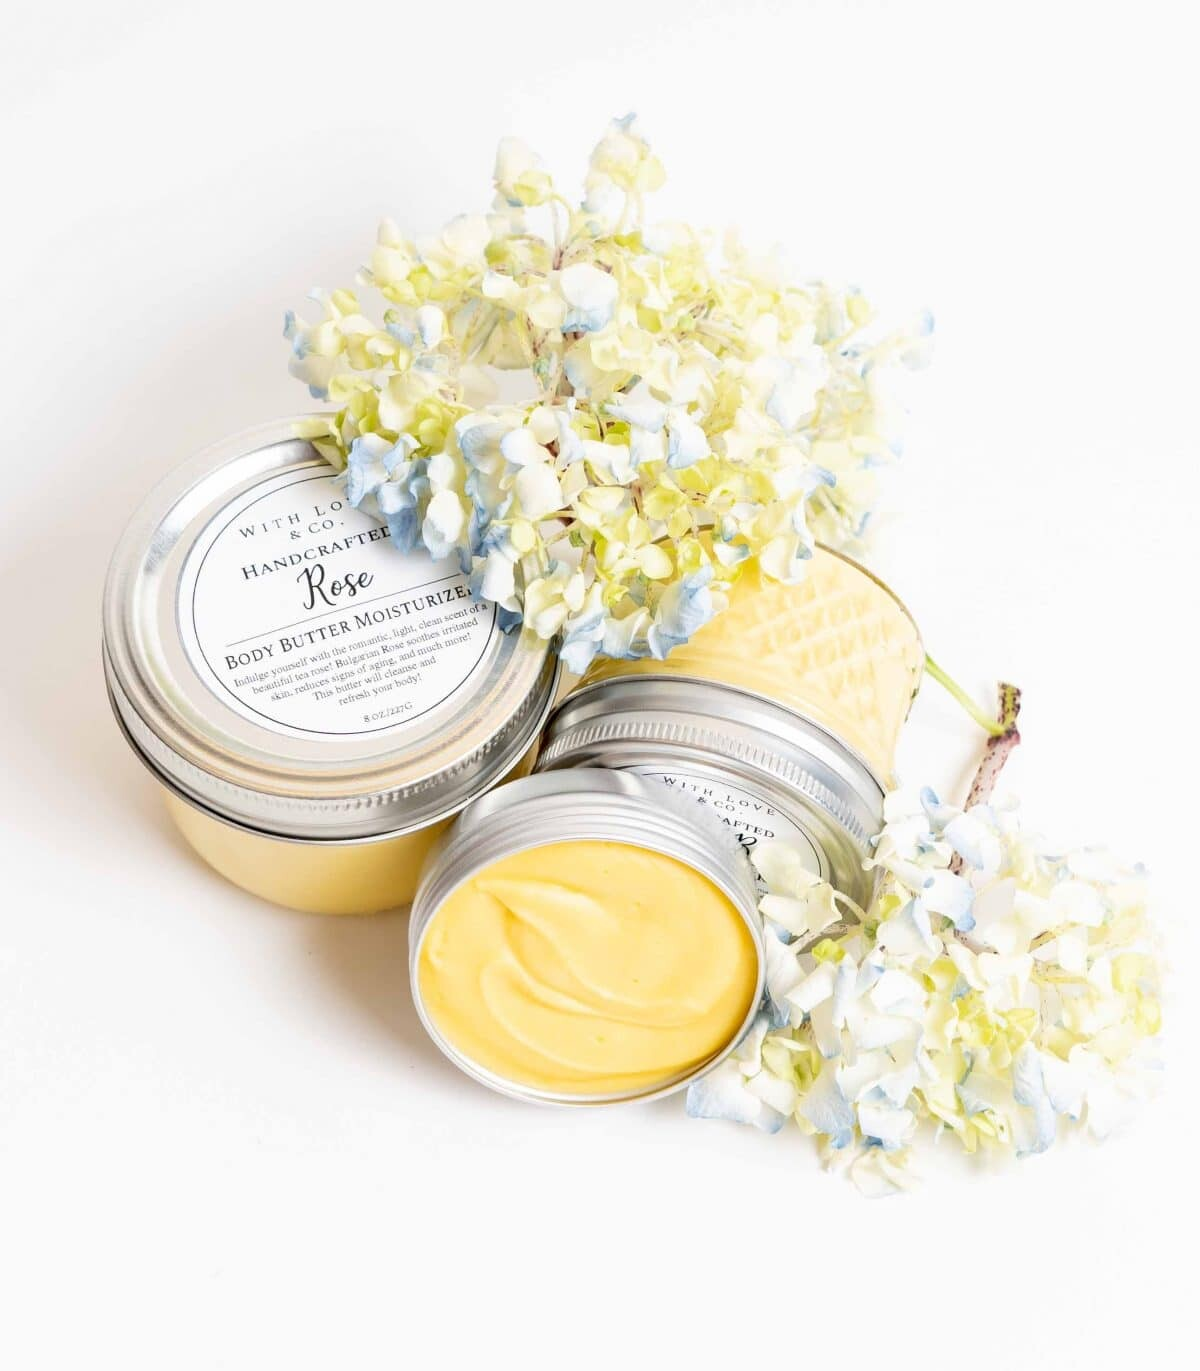 rose body butter image